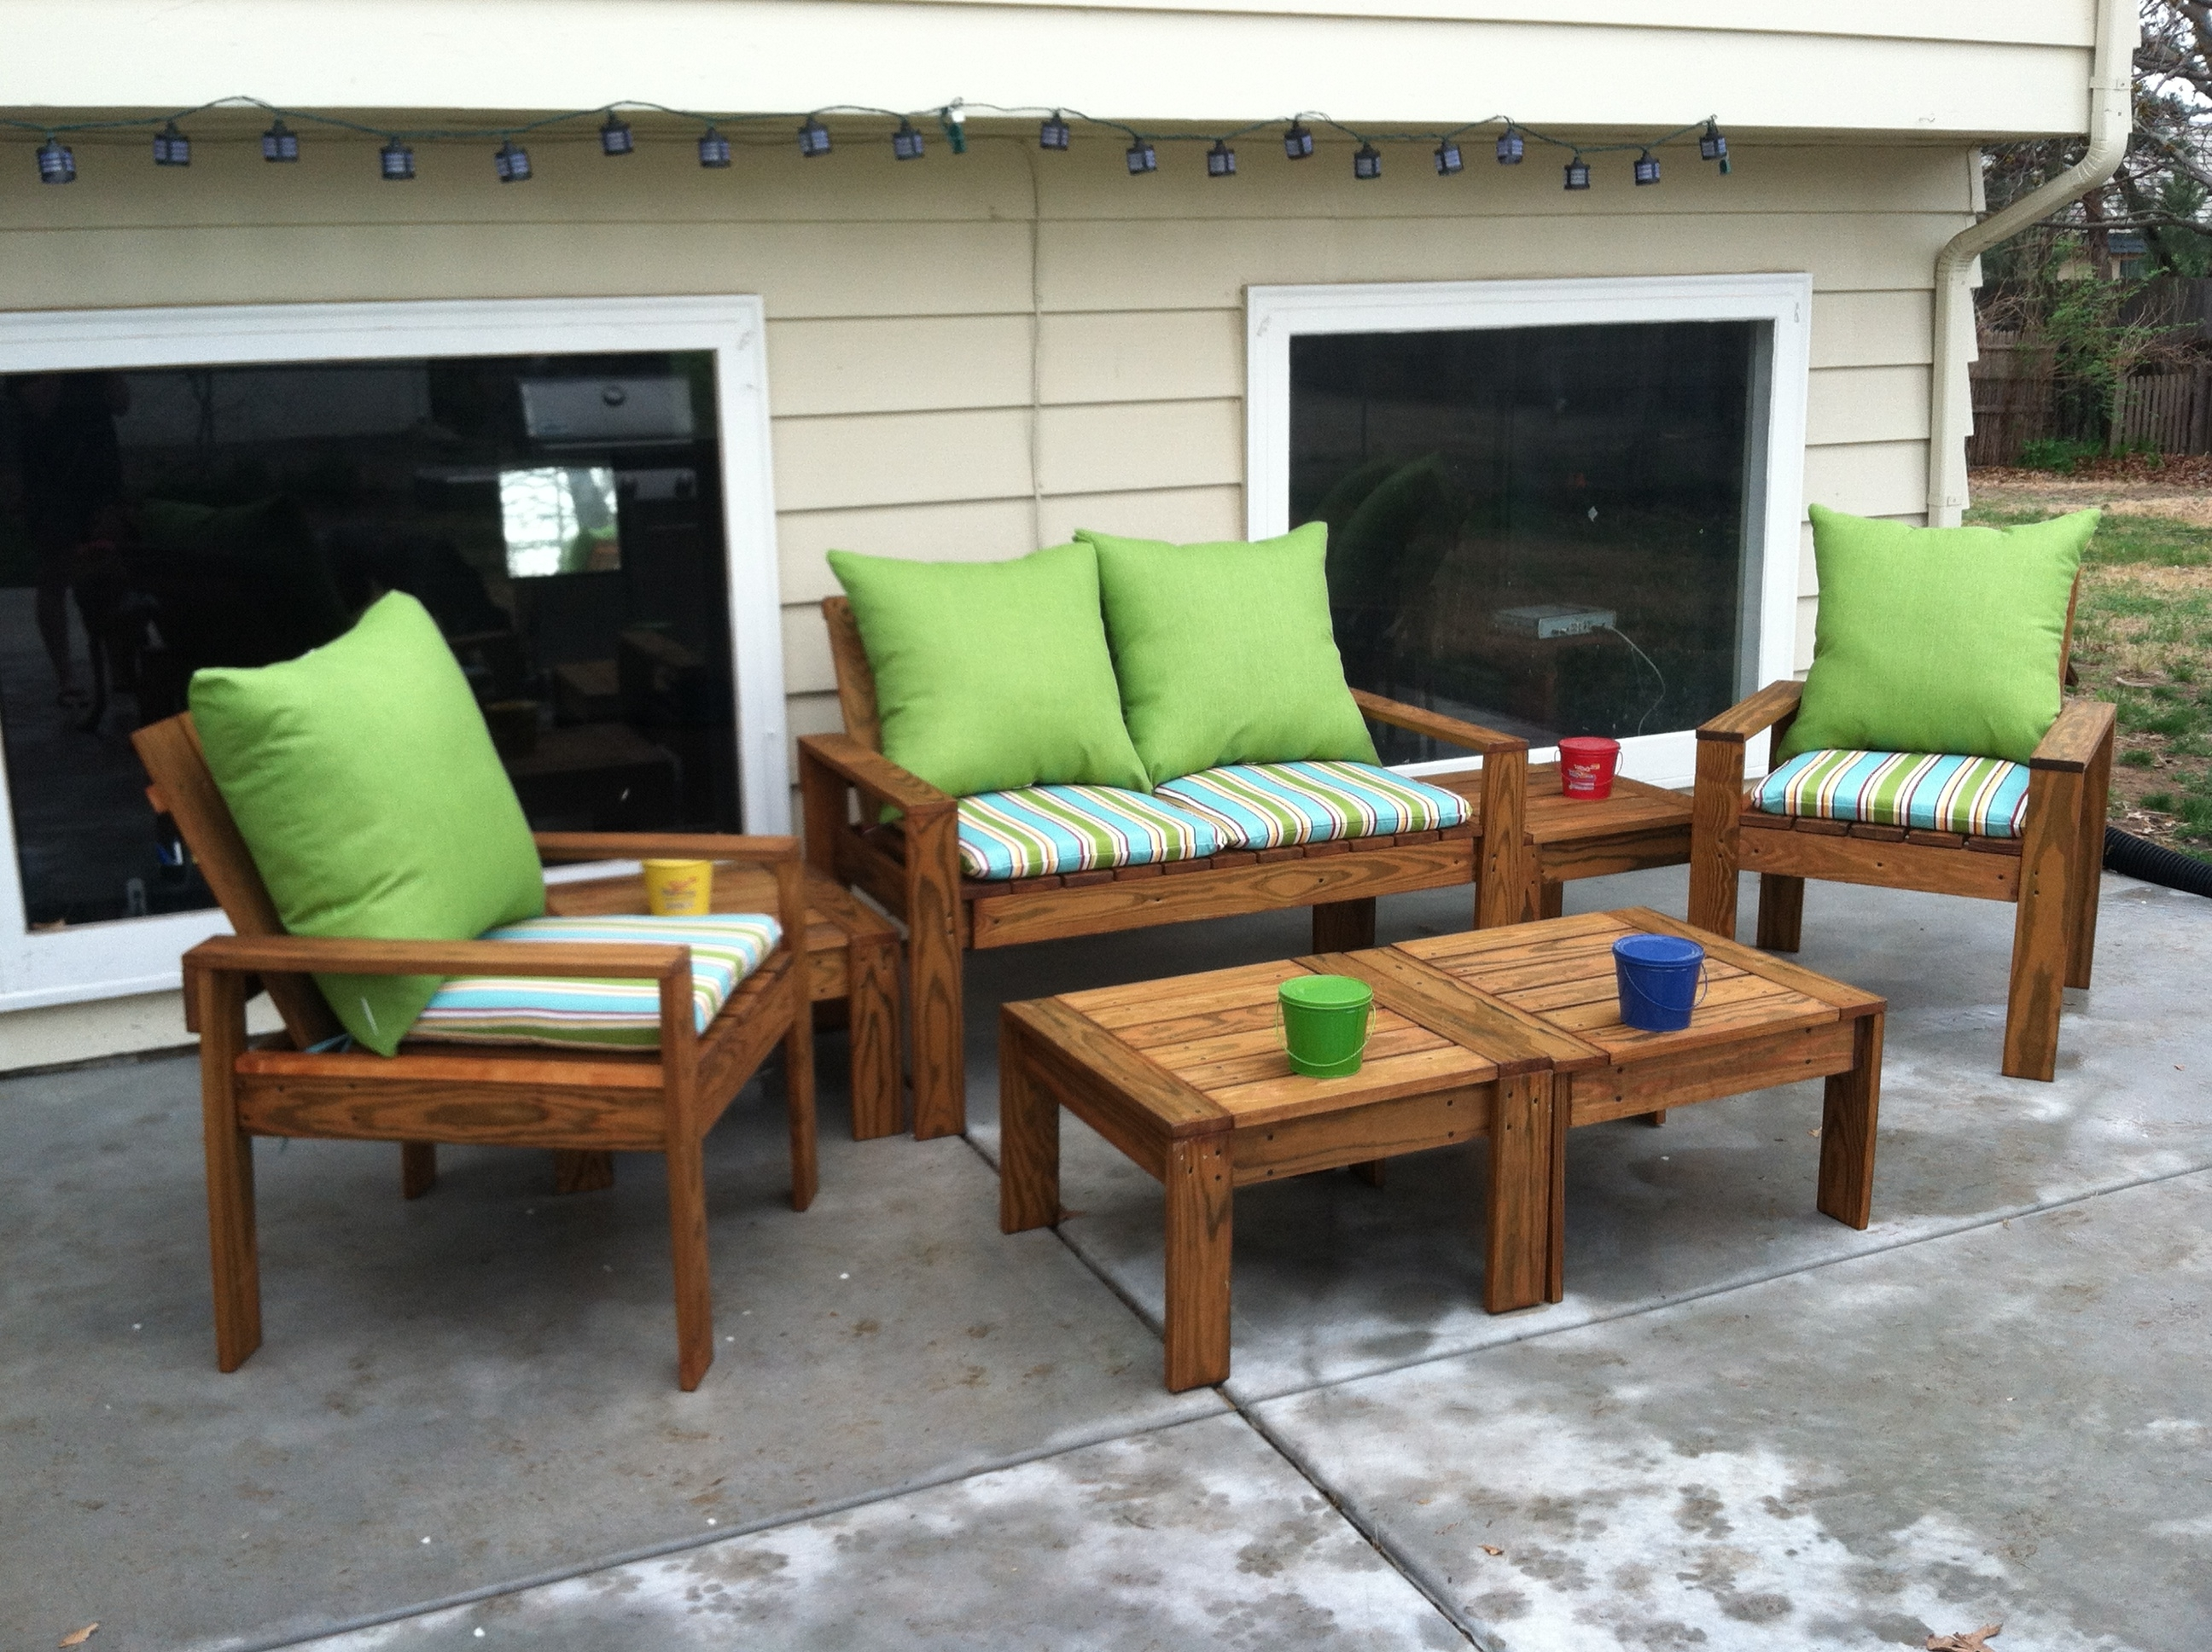 Recent Patio Conversation Sets Without Cushions Intended For Patio : Teak Wood Patio Outdoor Furniture Table Setd Chairs For (View 12 of 15)